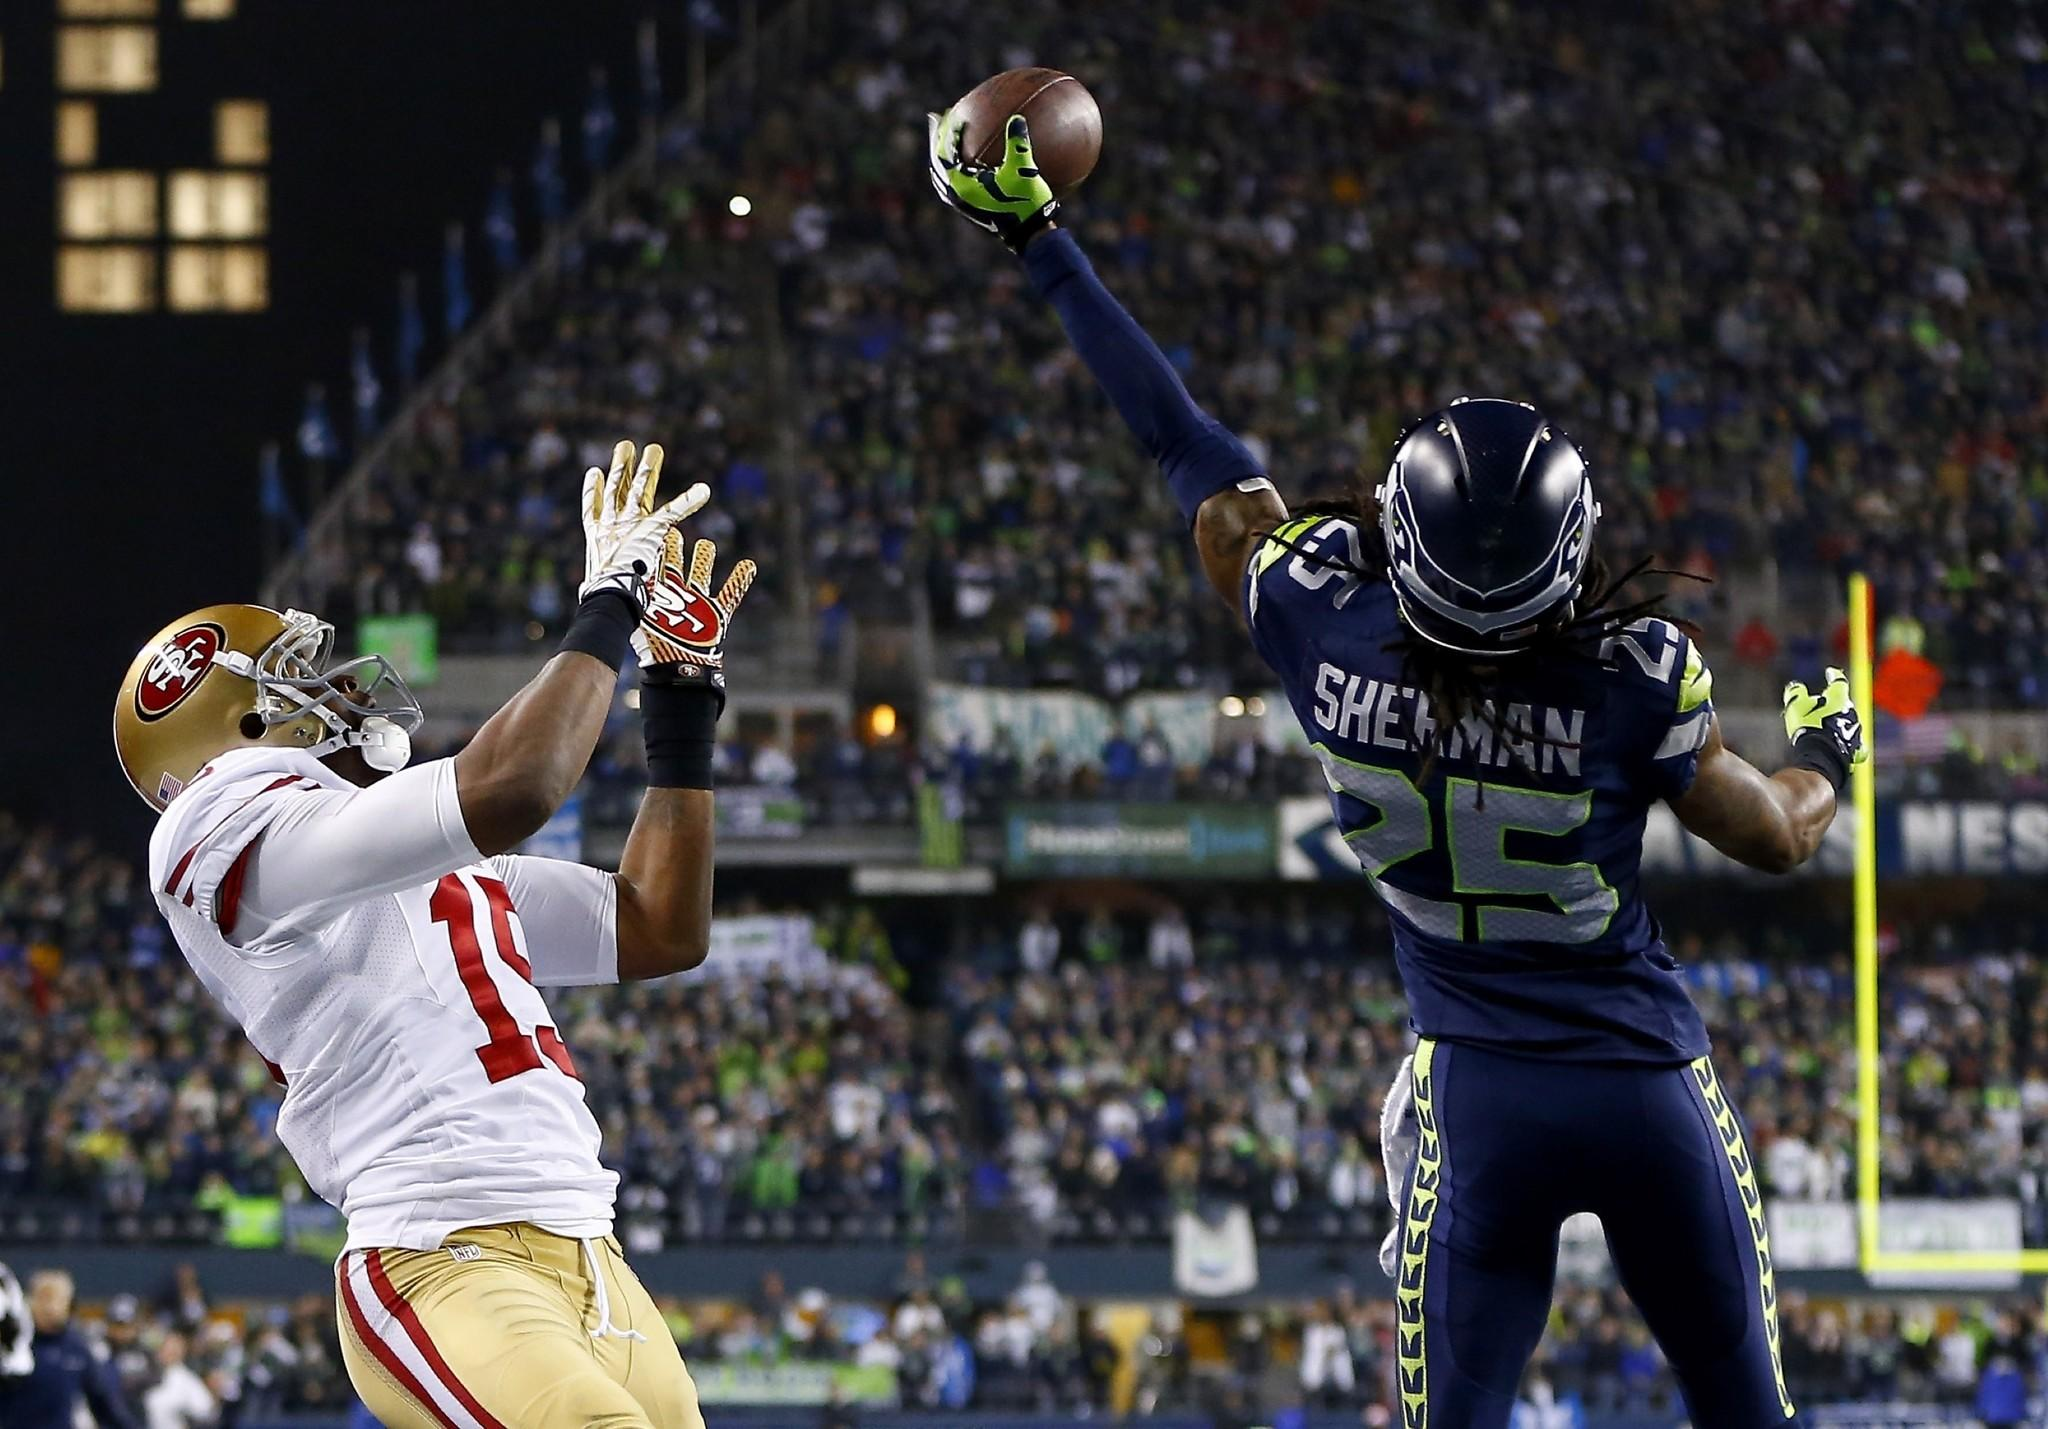 Seahawks cornerback Richard Sherman tips a pass in the end zone intended for 49ers receiver Michael Crabtree in the final minute of the NFC championship game.